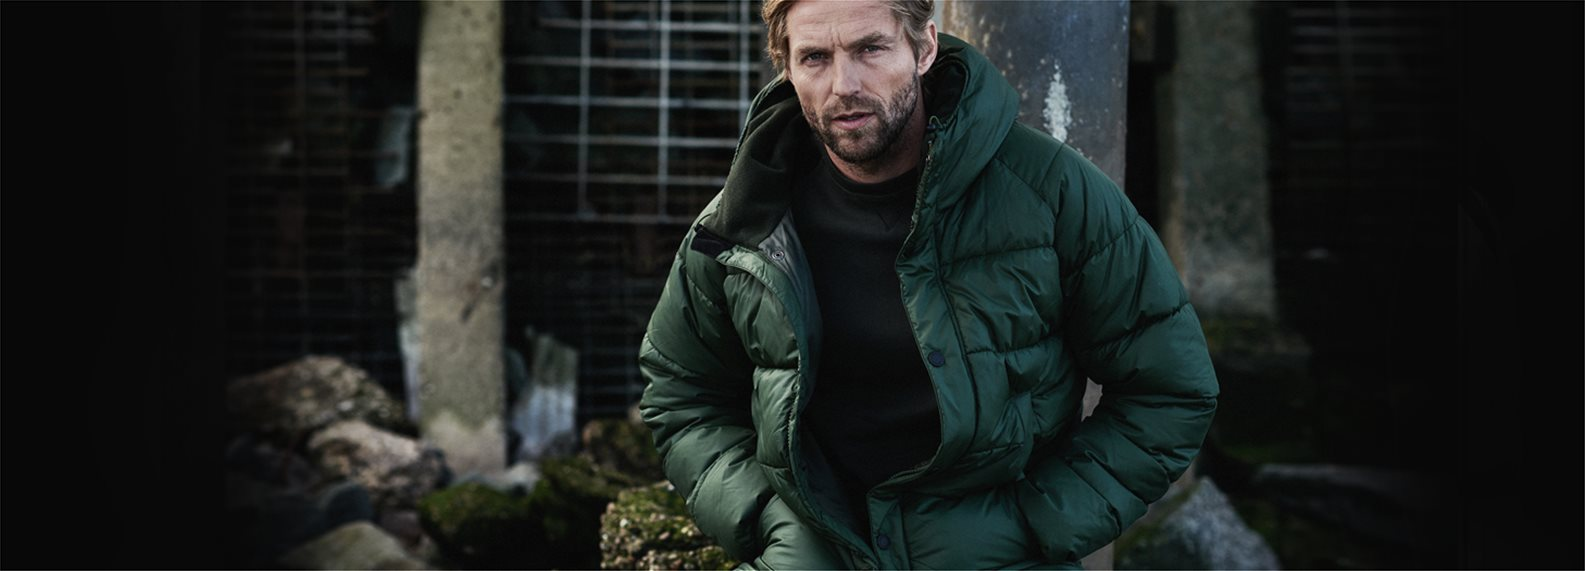 BARBOUR MEN'S NEW COLLECTION image